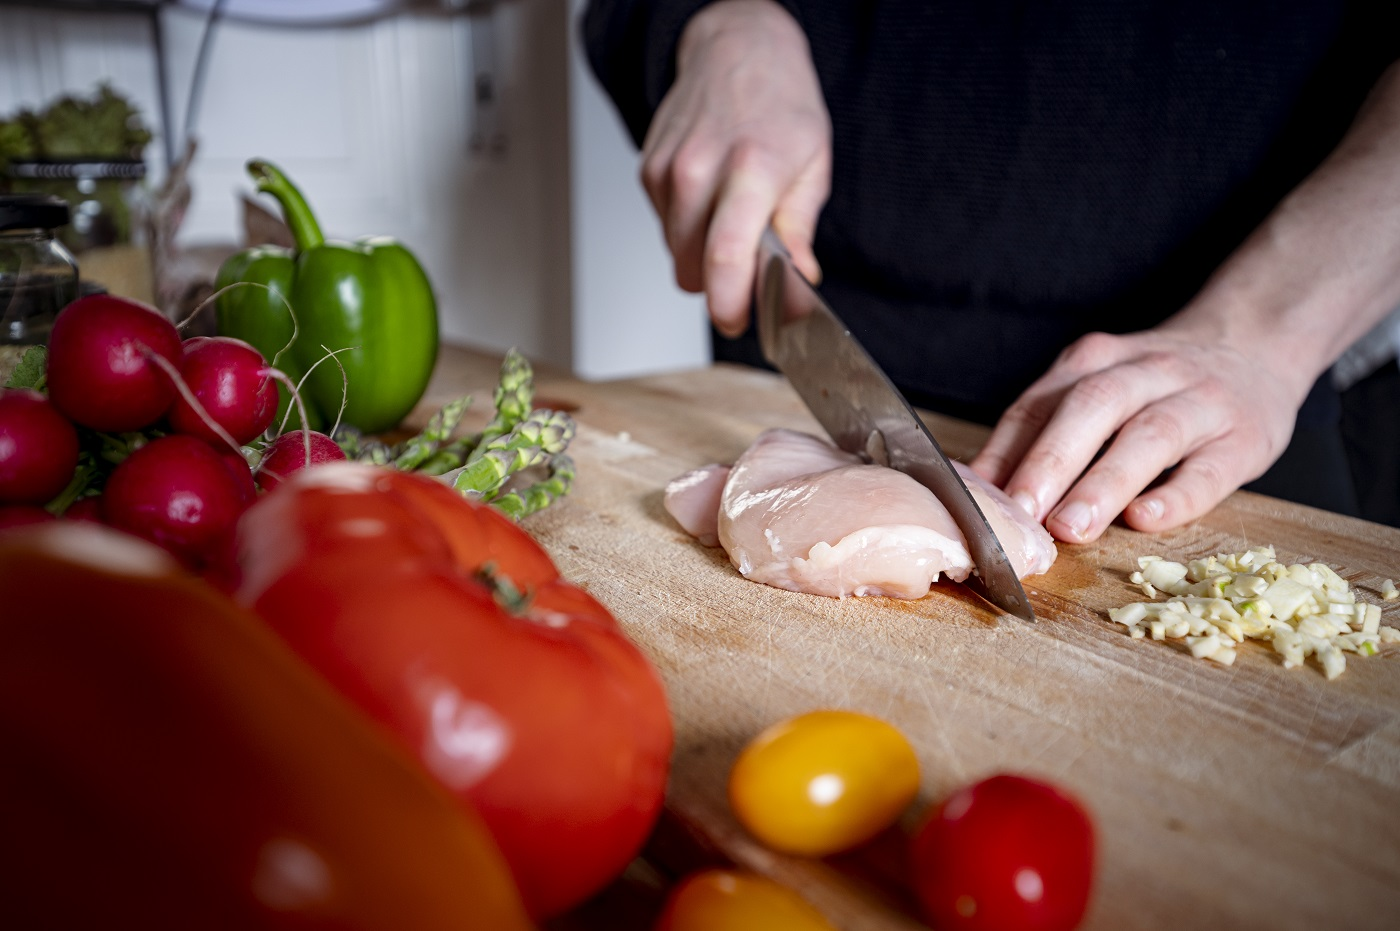 A person cuts a chicken fillet on a cutting board with a kitchen knife.